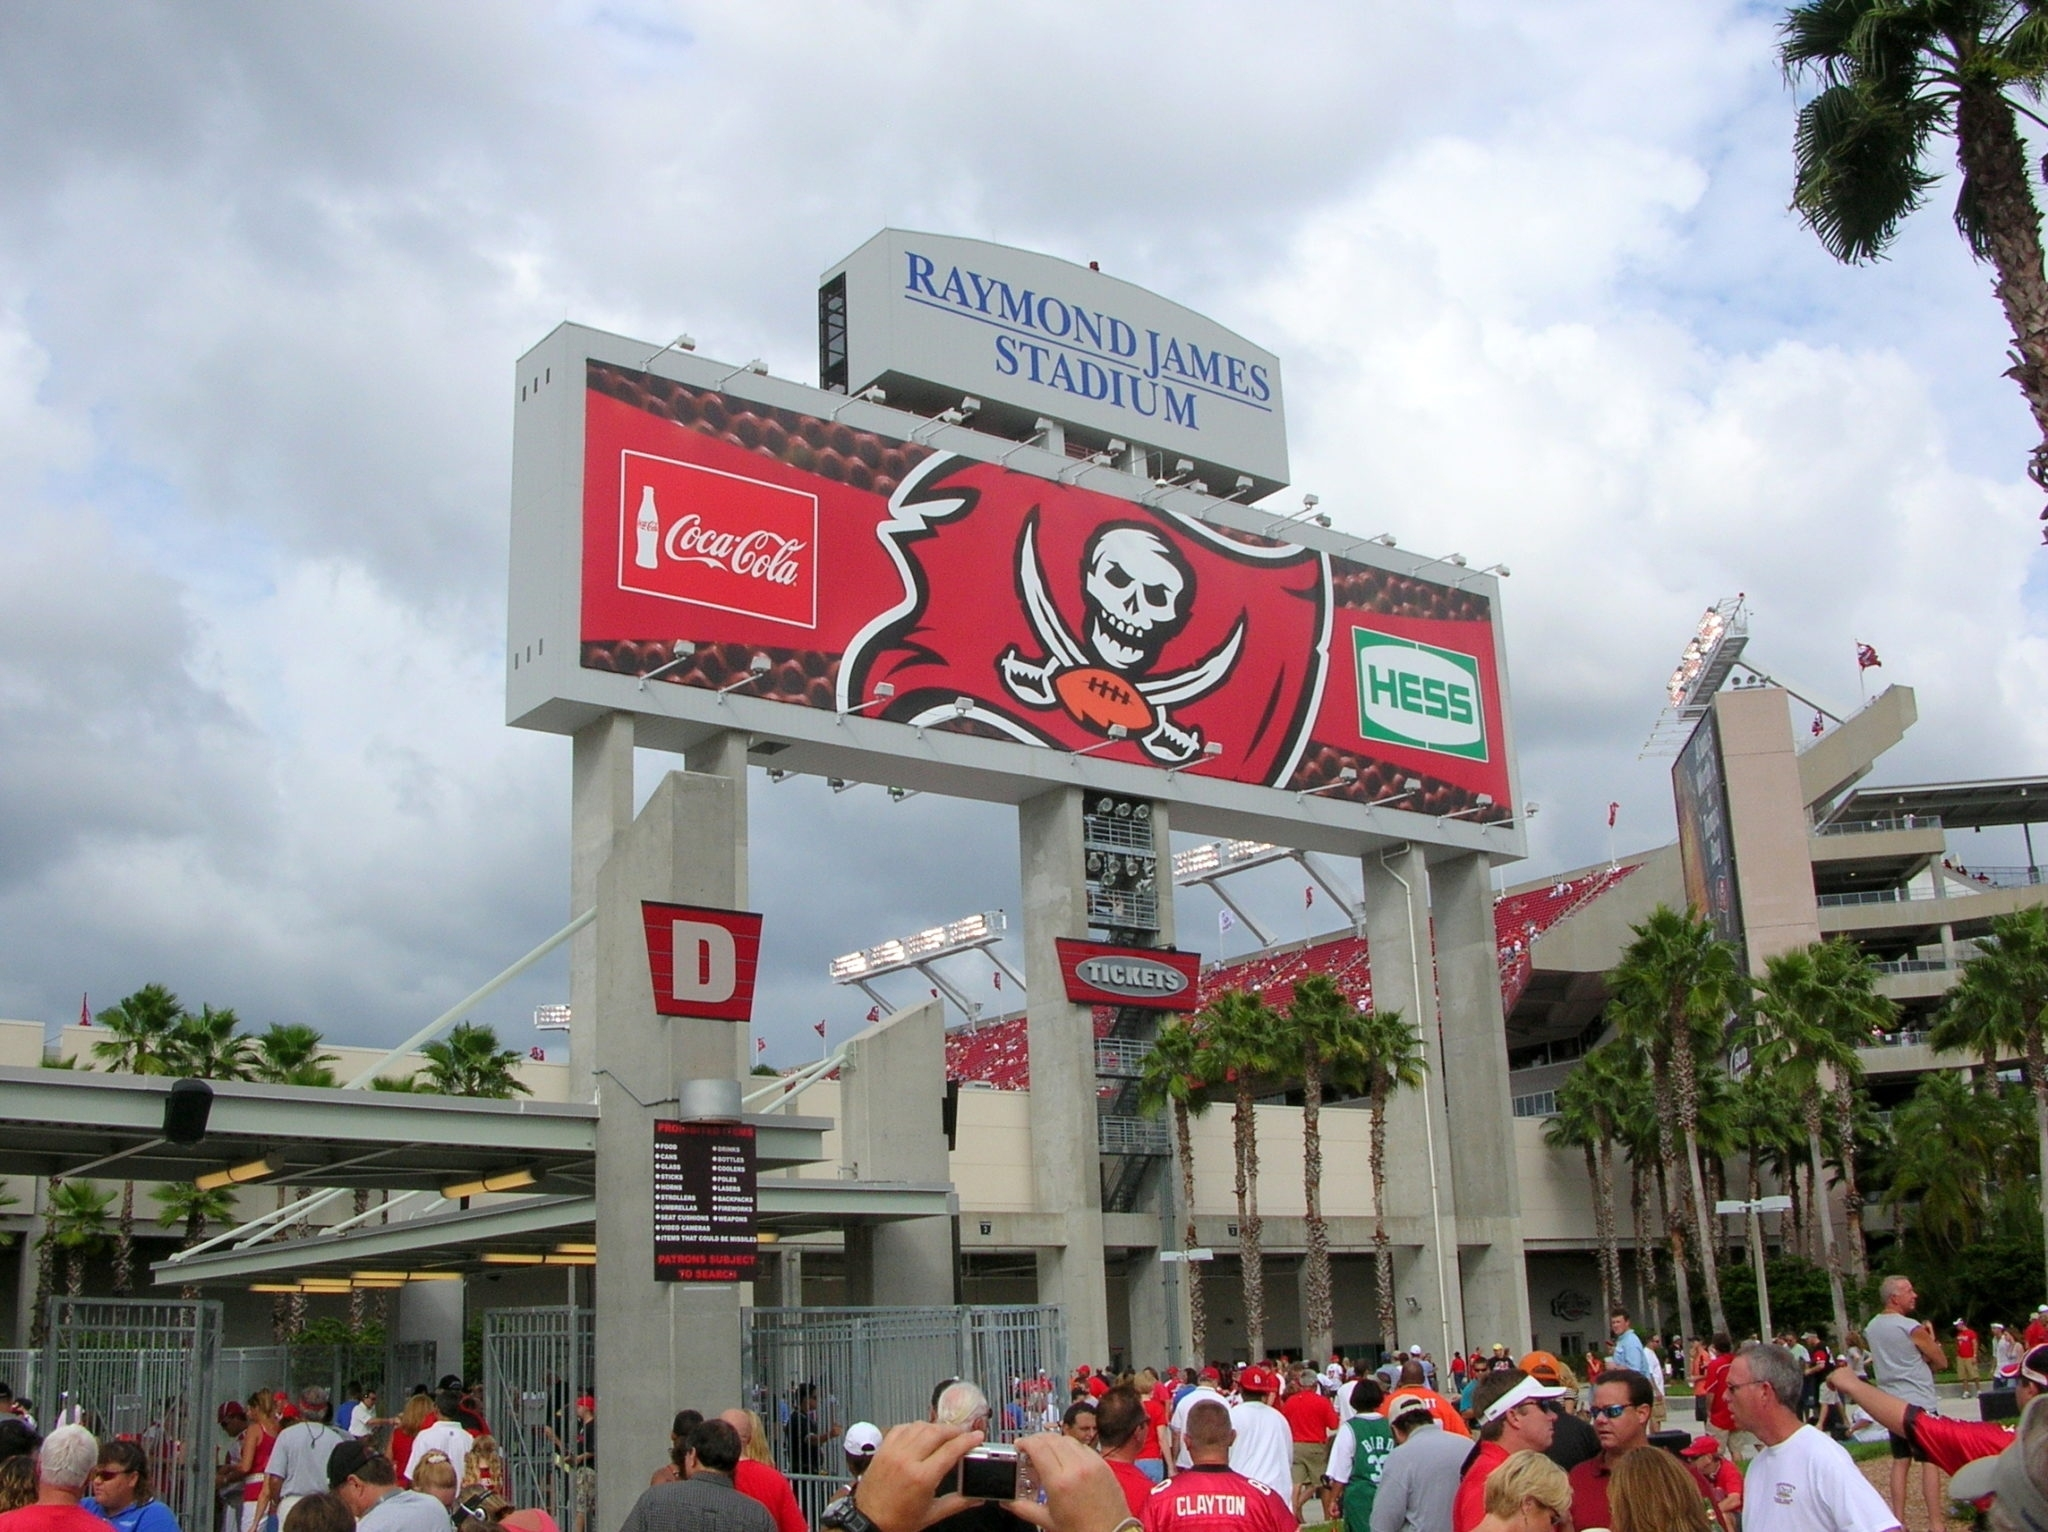 2021 Super Bowl In Tampa Will Benefit Real Estate Investors pertaining to Super Bowl 2021 Tickets